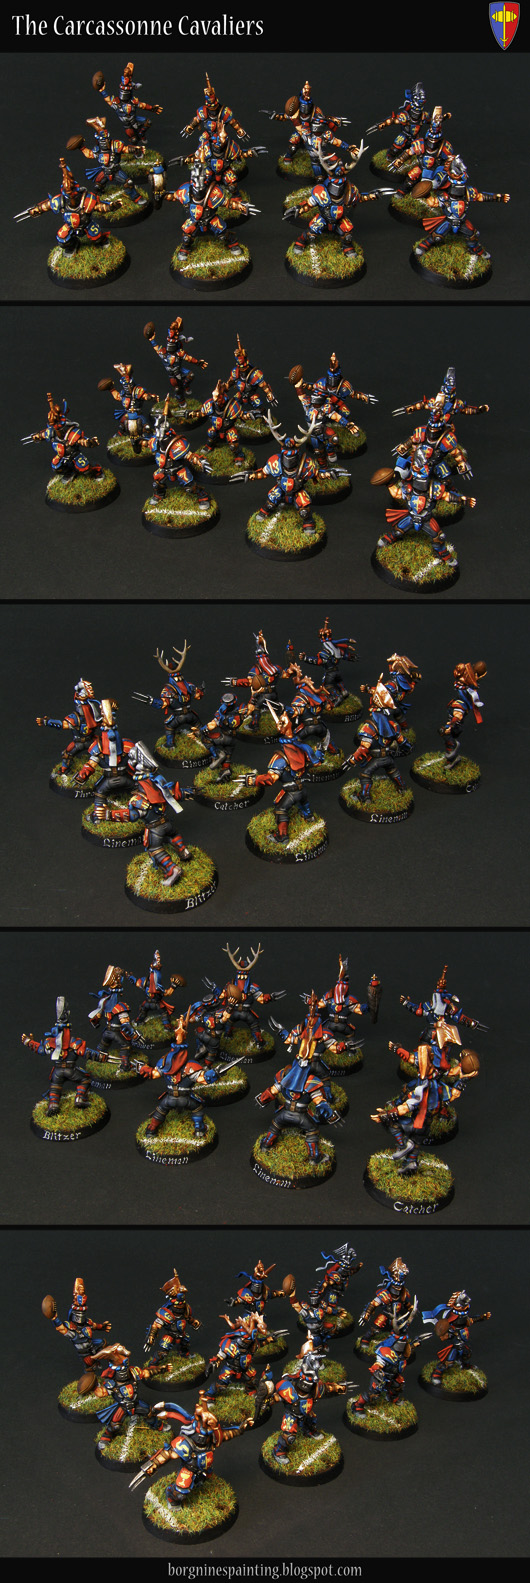 Tabletop miniature Blood Bowl players - a converted Human Team, with their heads replaced with Bretonnian helmets. They have red/blue color scheme with yellow markings - and here they are presented together as a 12-man-strong group.